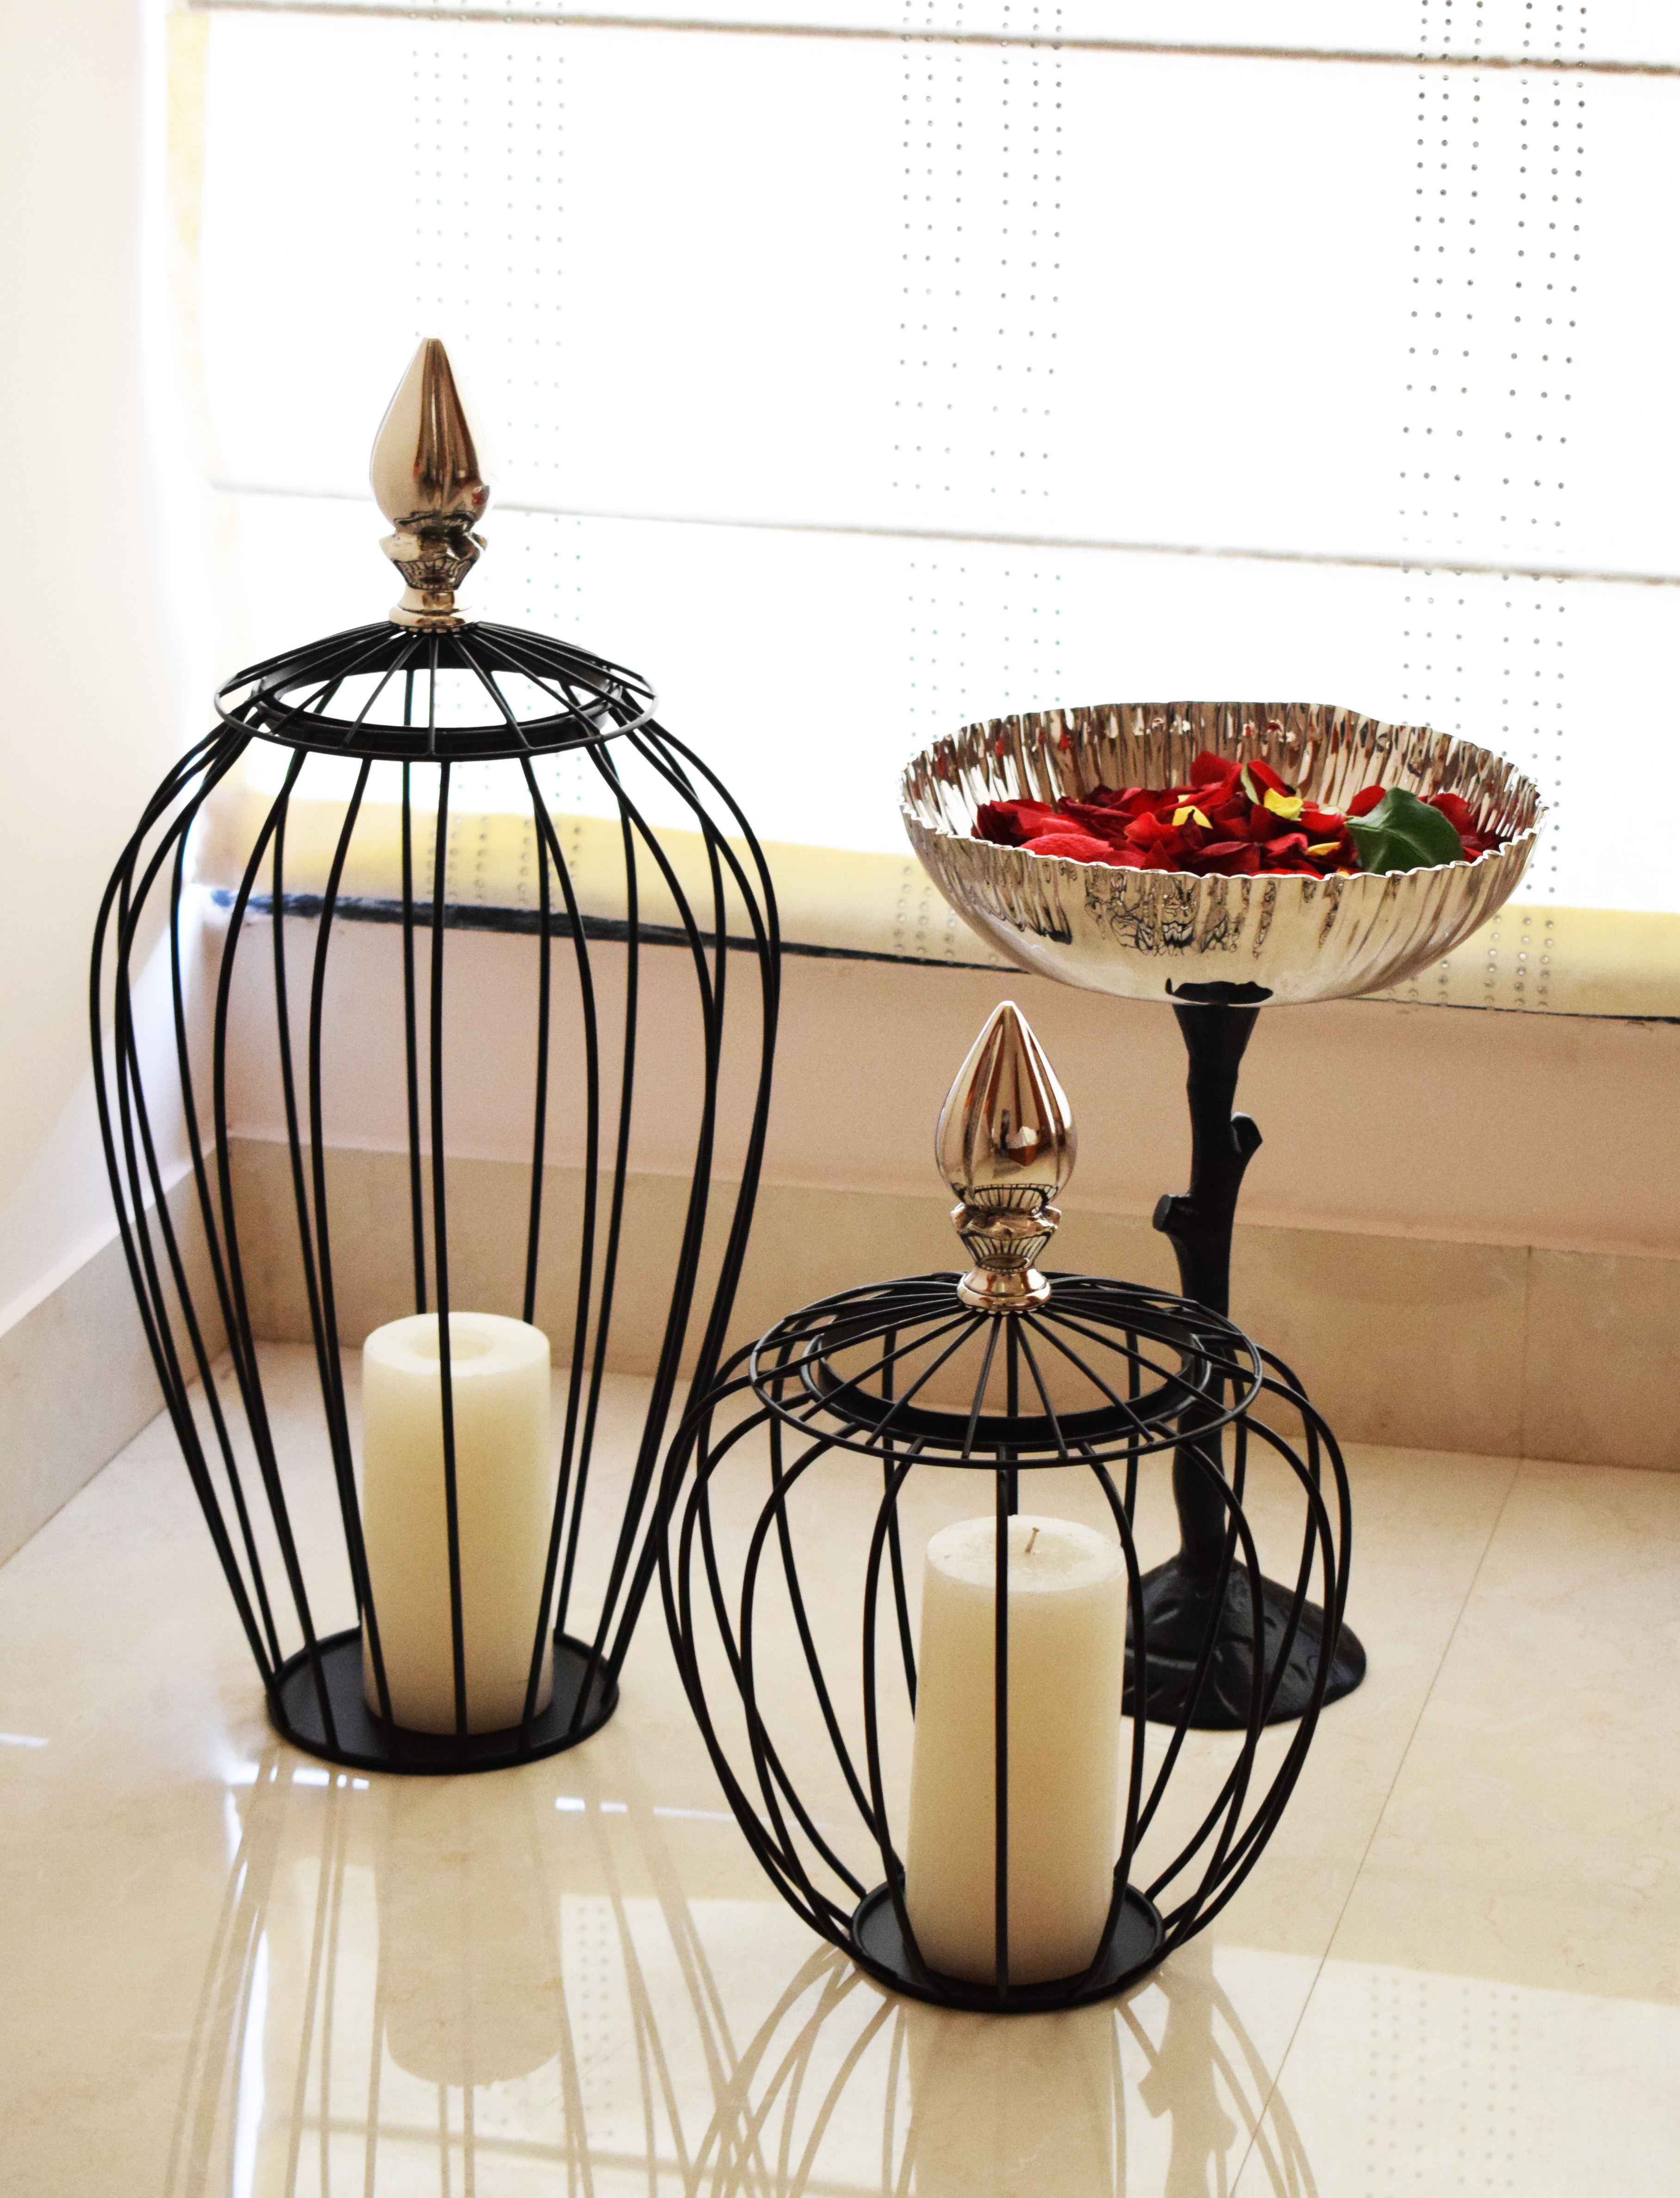 Enchanting collection of handcrafted candles by Fanusta.